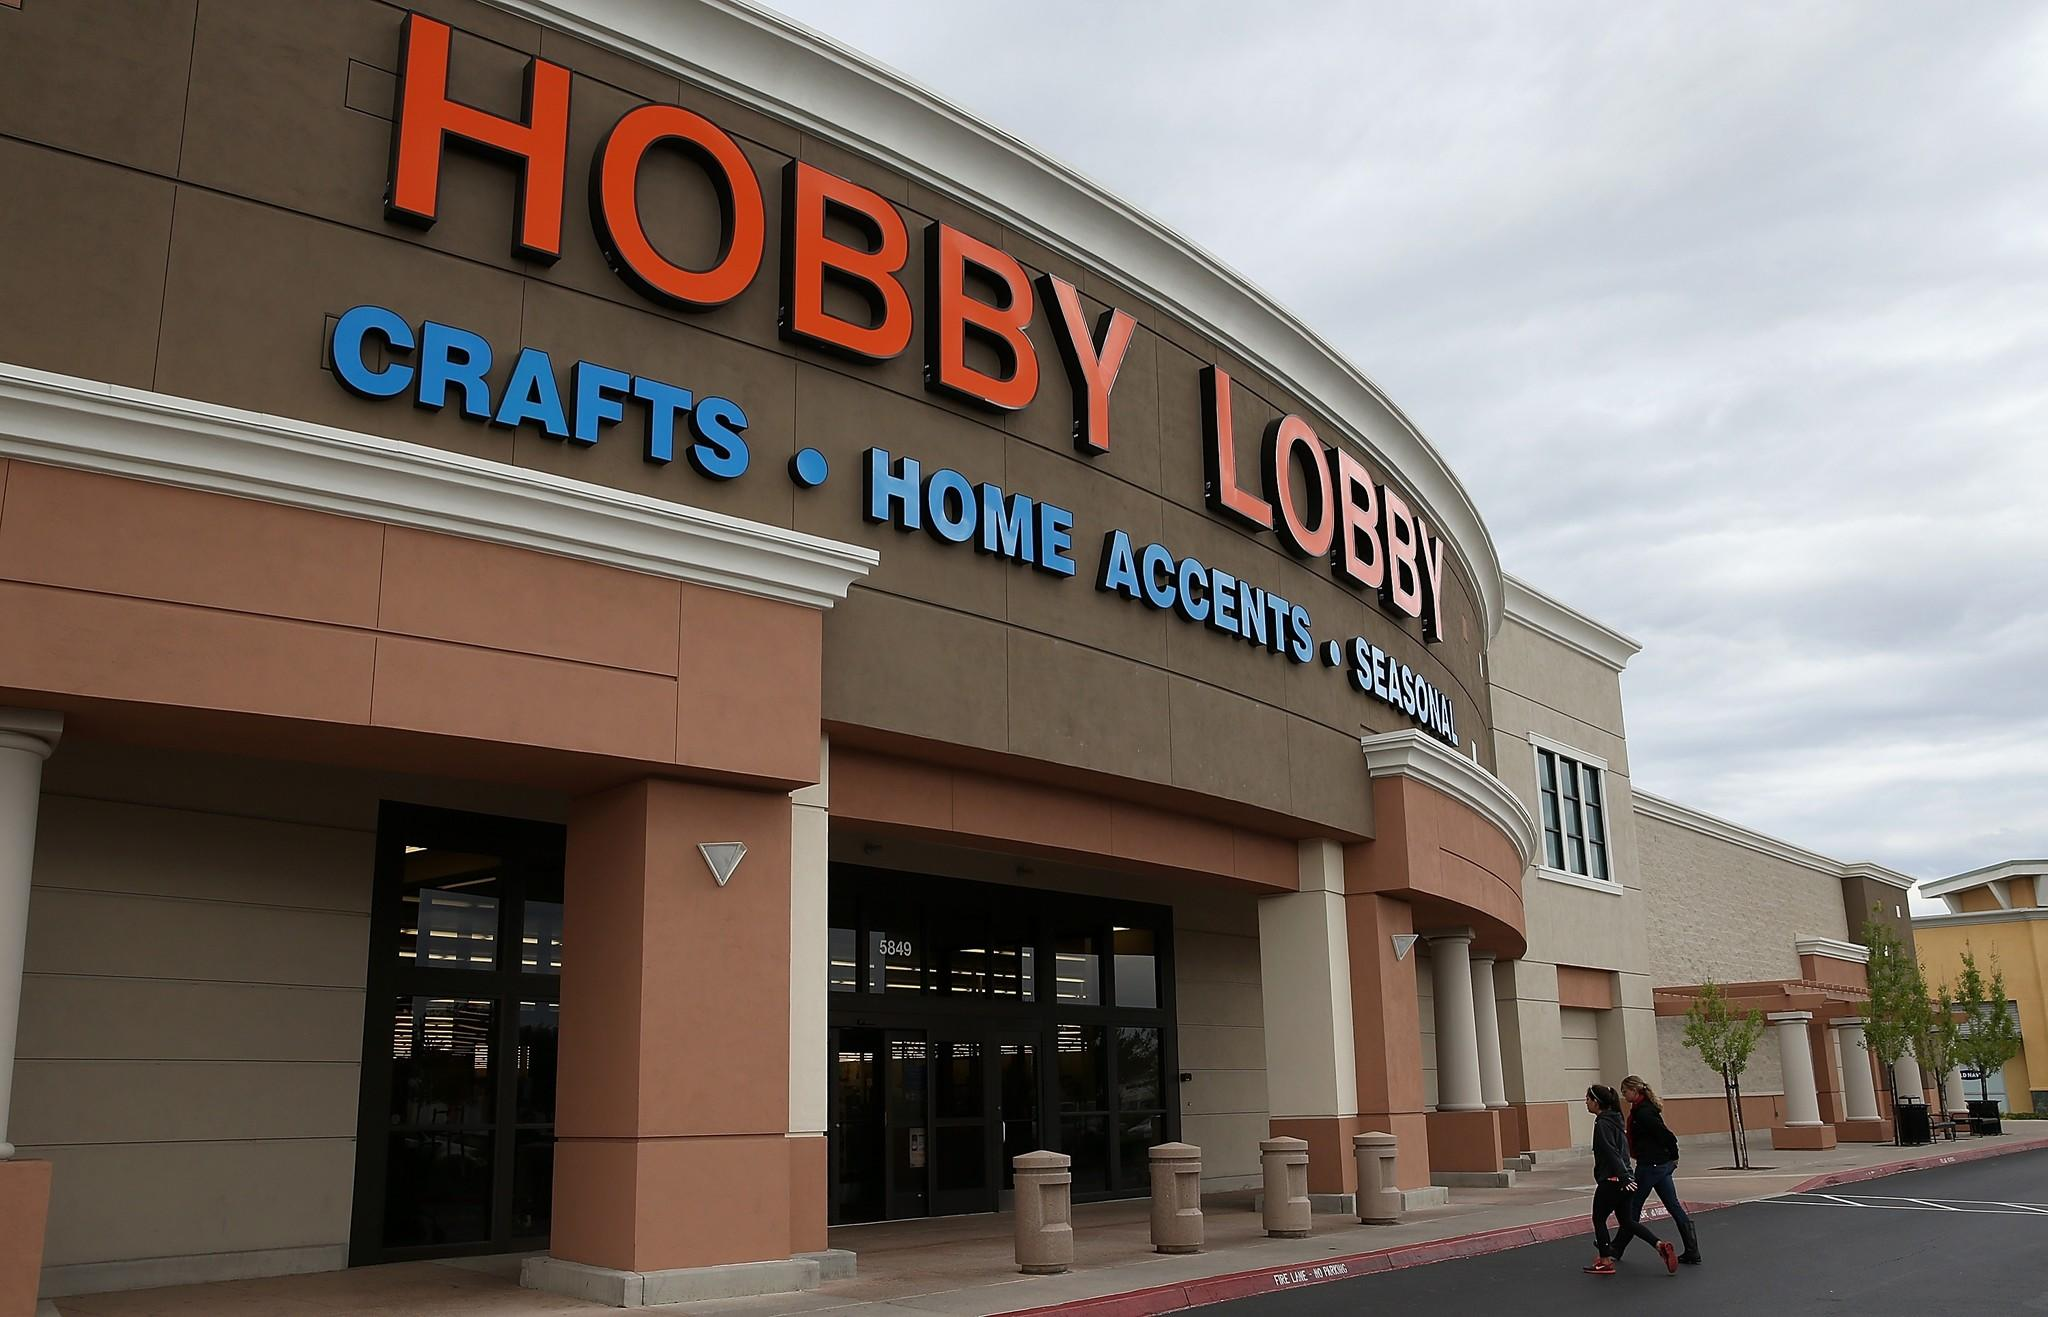 The owners of Hobby Lobby, a chain of crafts stores, is challenging the requirement that companies provide insurance covering all forms of FDA-approved contraception.